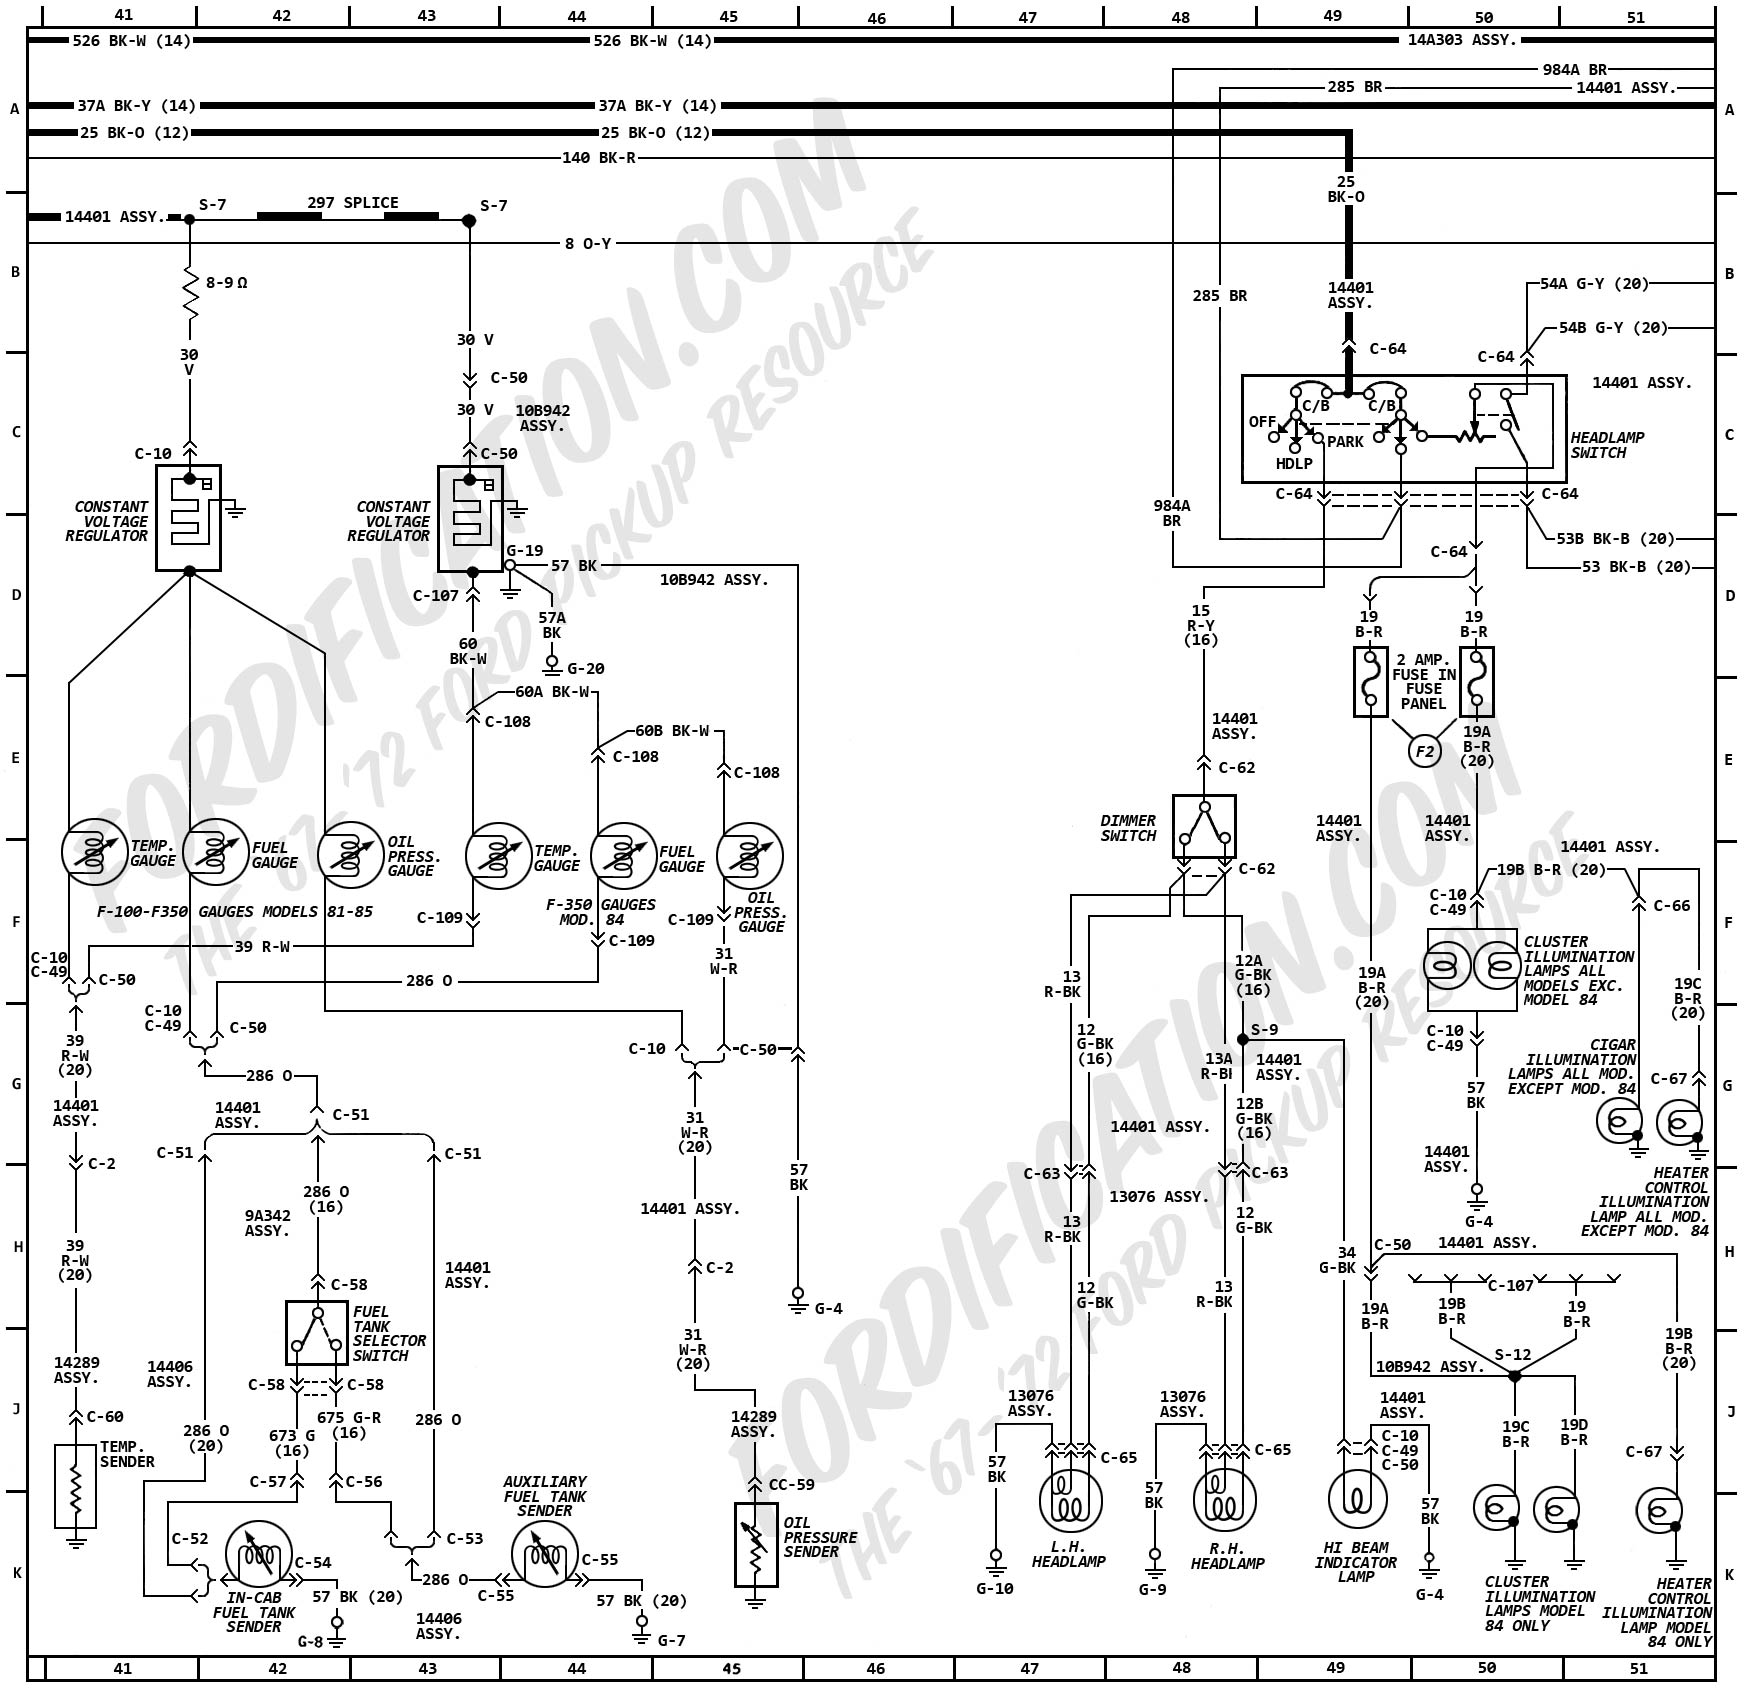 [DIAGRAM] Enerpac Wiring Diagram FULL Version HD Quality